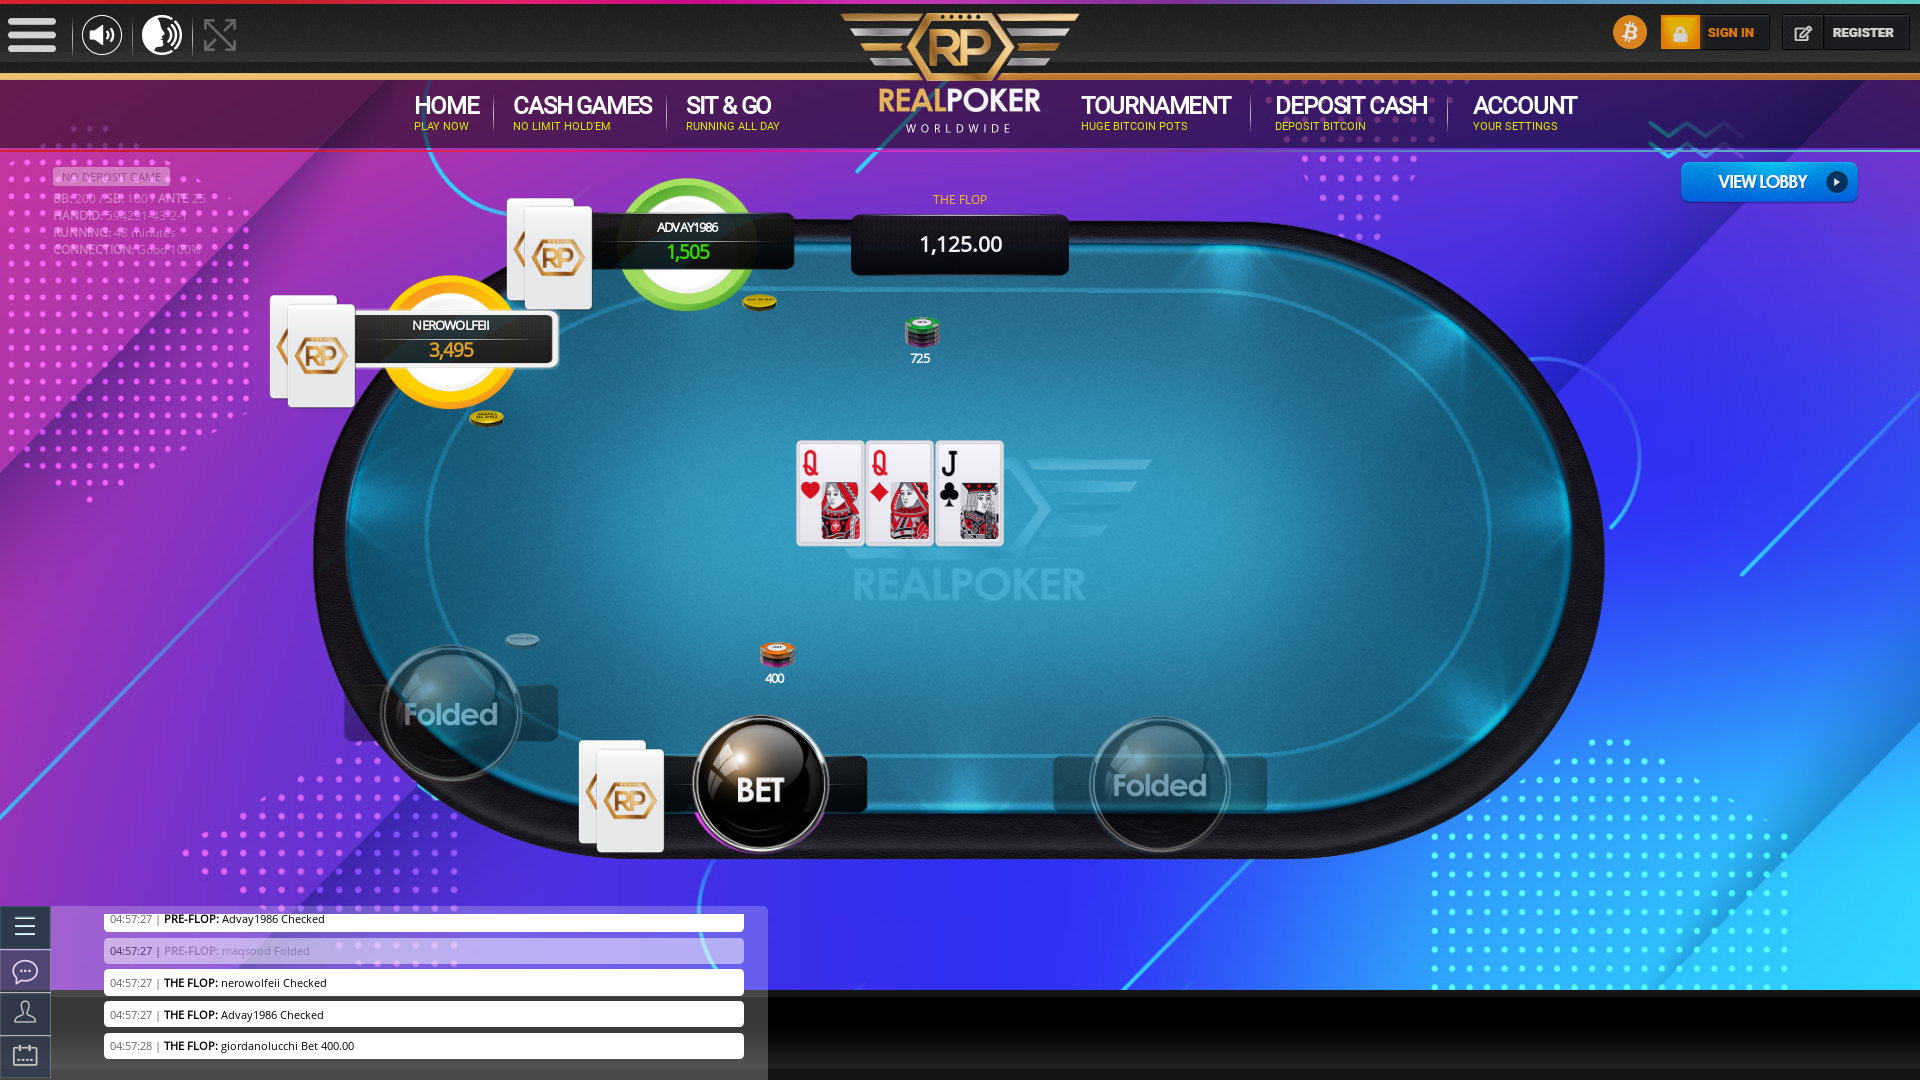 online poker on a 10 player table in the 48th minute match up